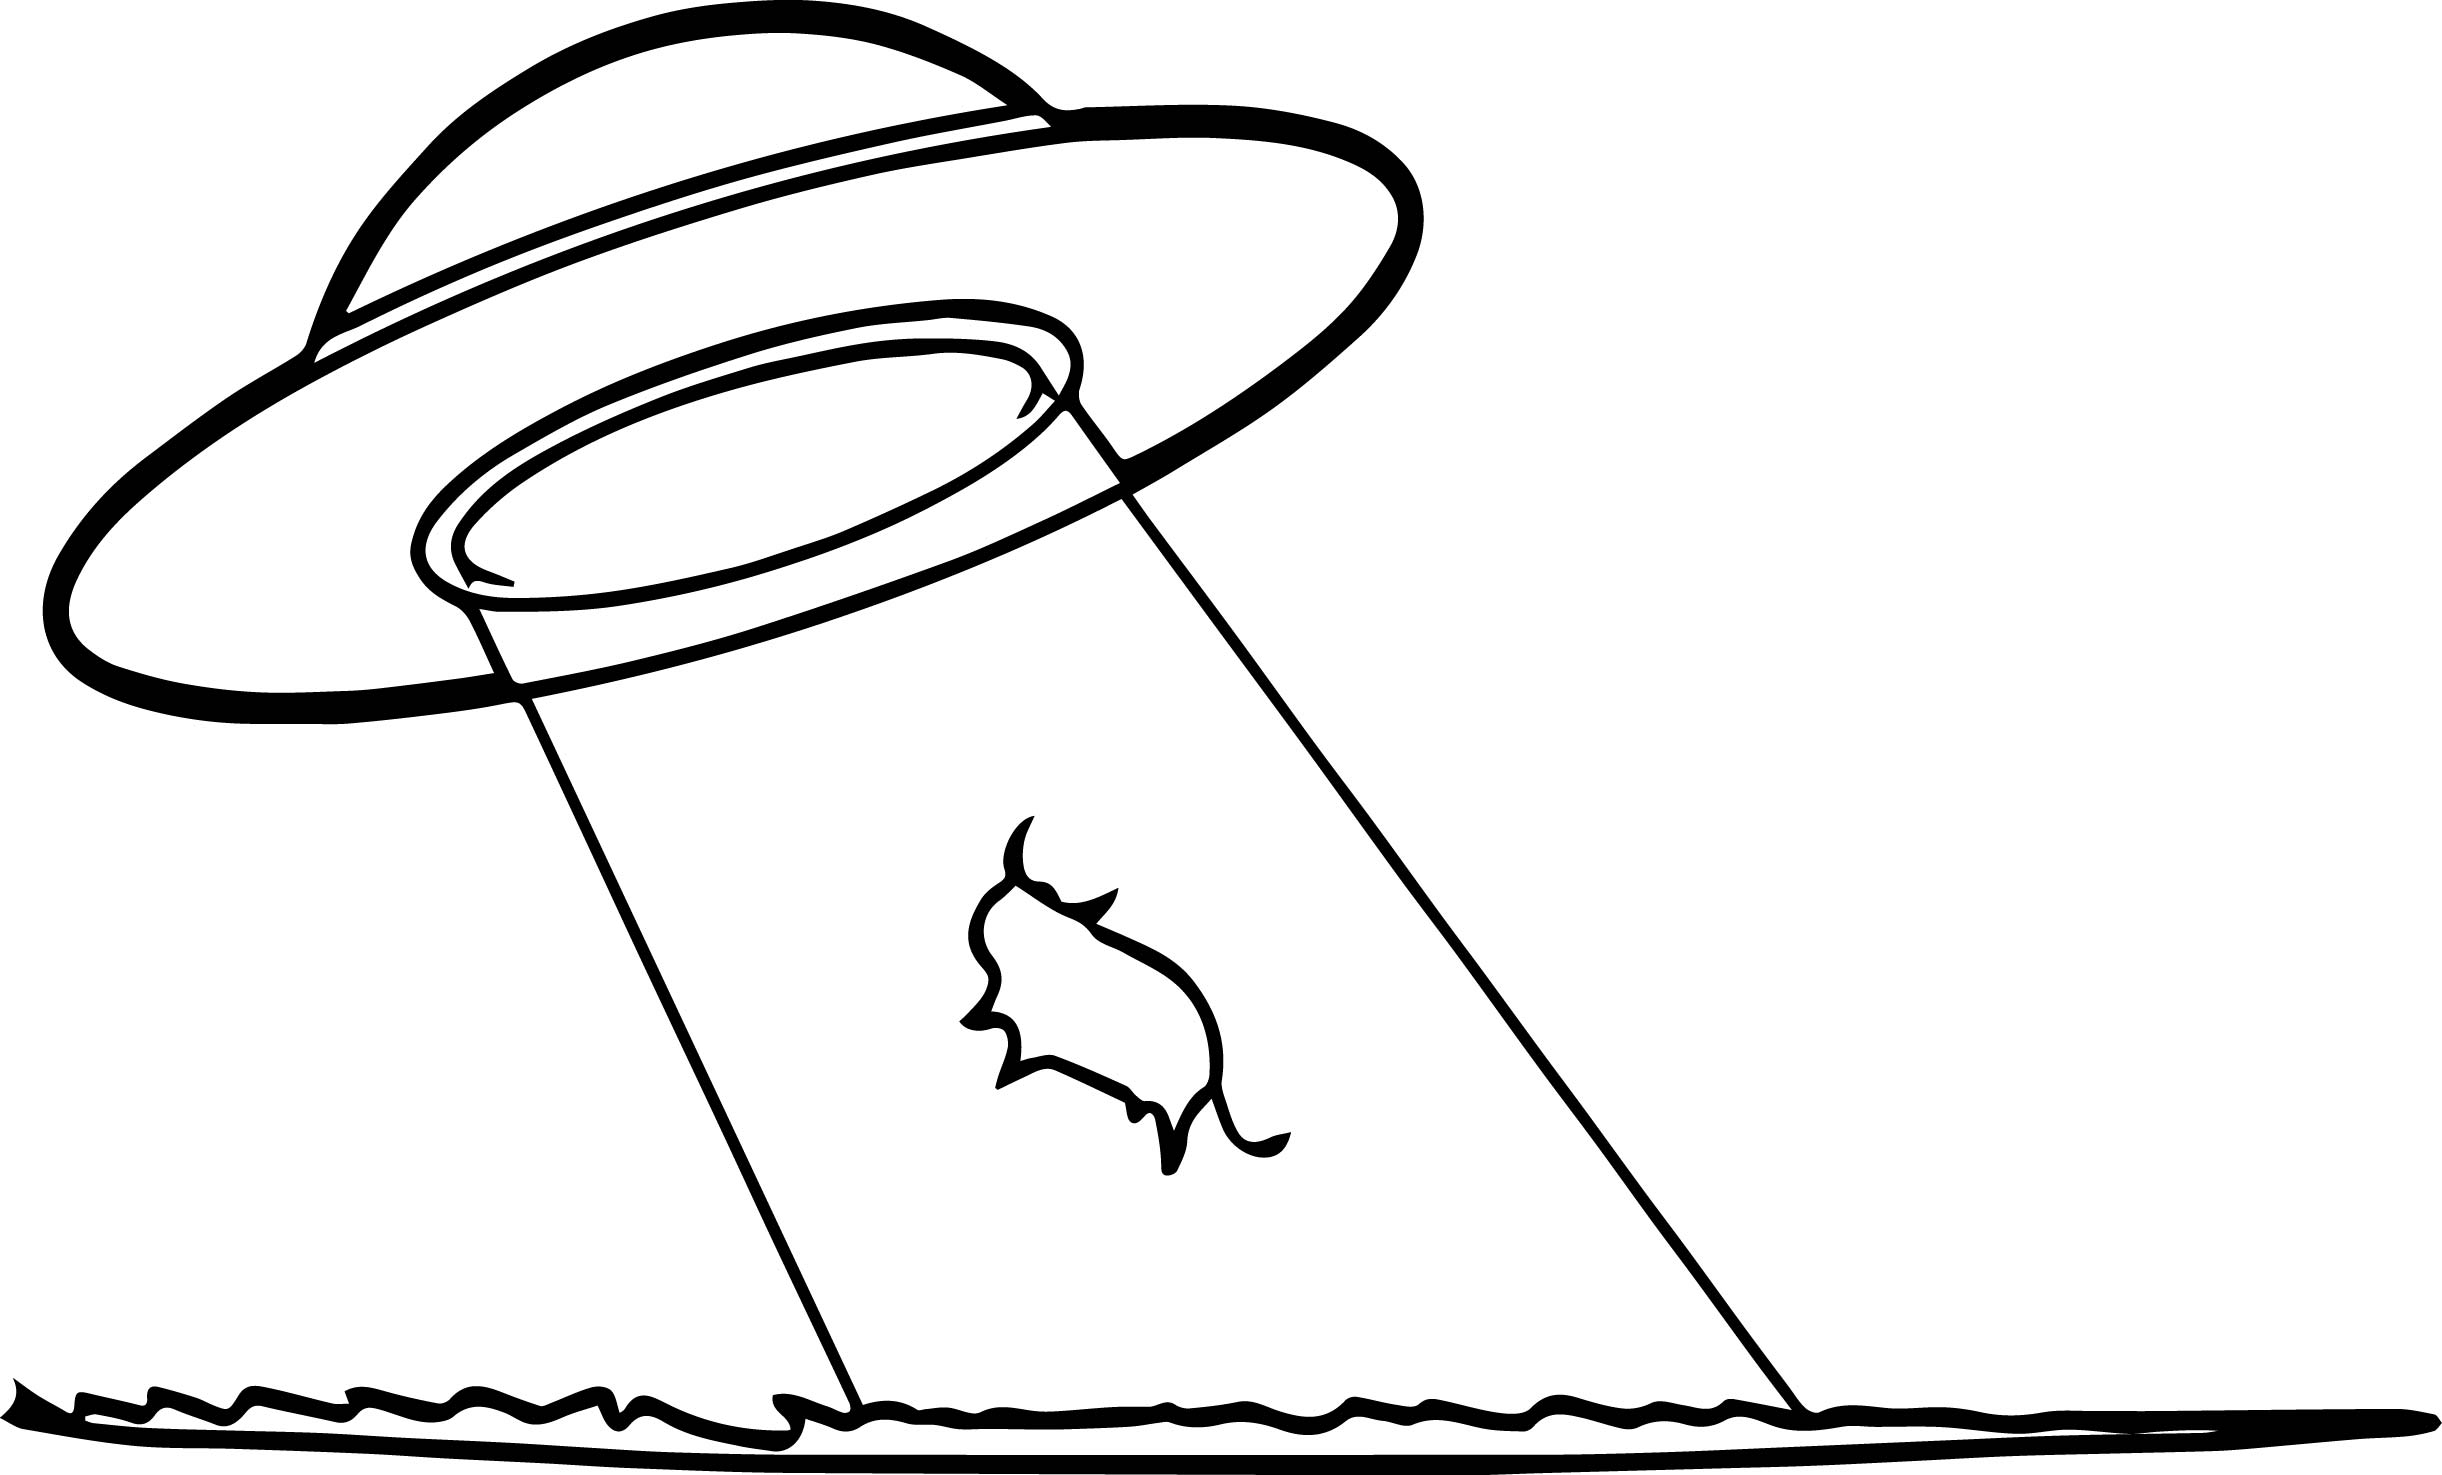 2442x1475 Cow Abduction Coloring Page Wecoloringpage